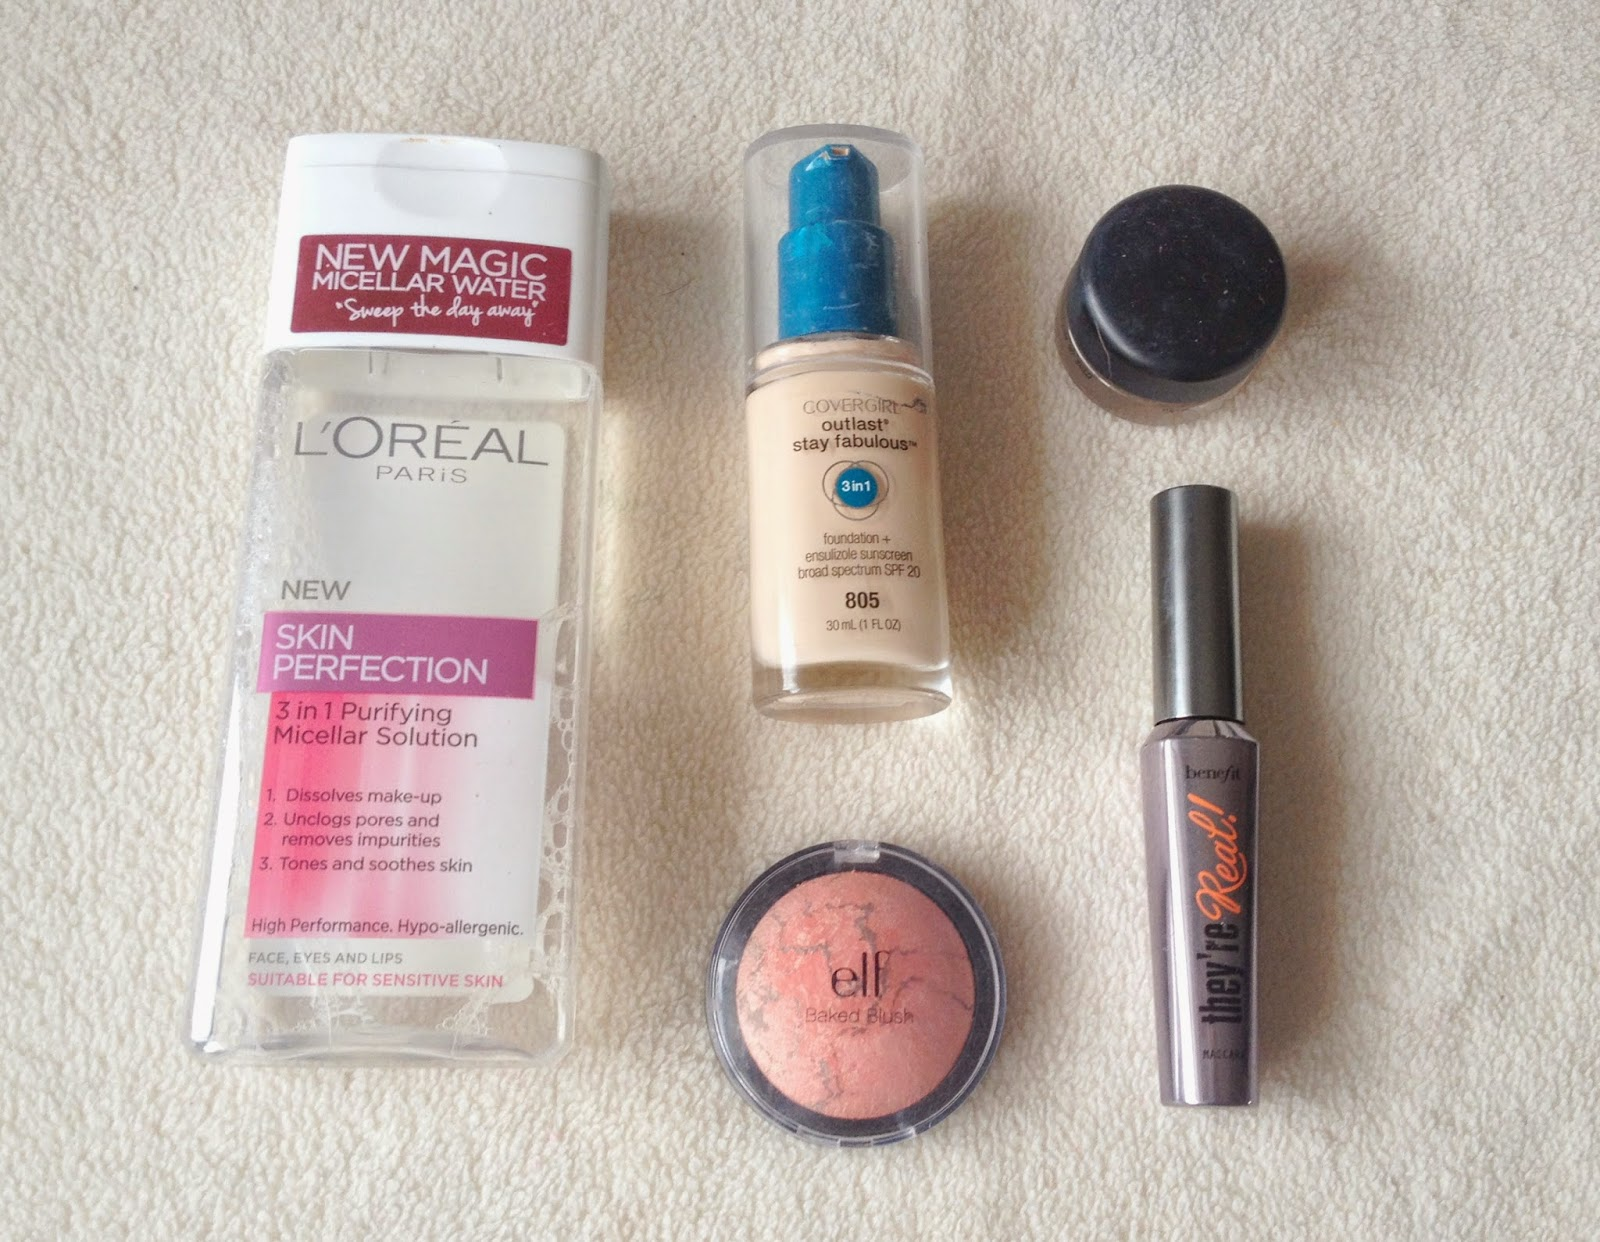 August Favourites - L'Oreal Micellar Water, Benefit They're Real, Covergirl Outlast Foundation, MAC Bare Study Paintpot, Elf Baked Blush in Peachy Cheeky